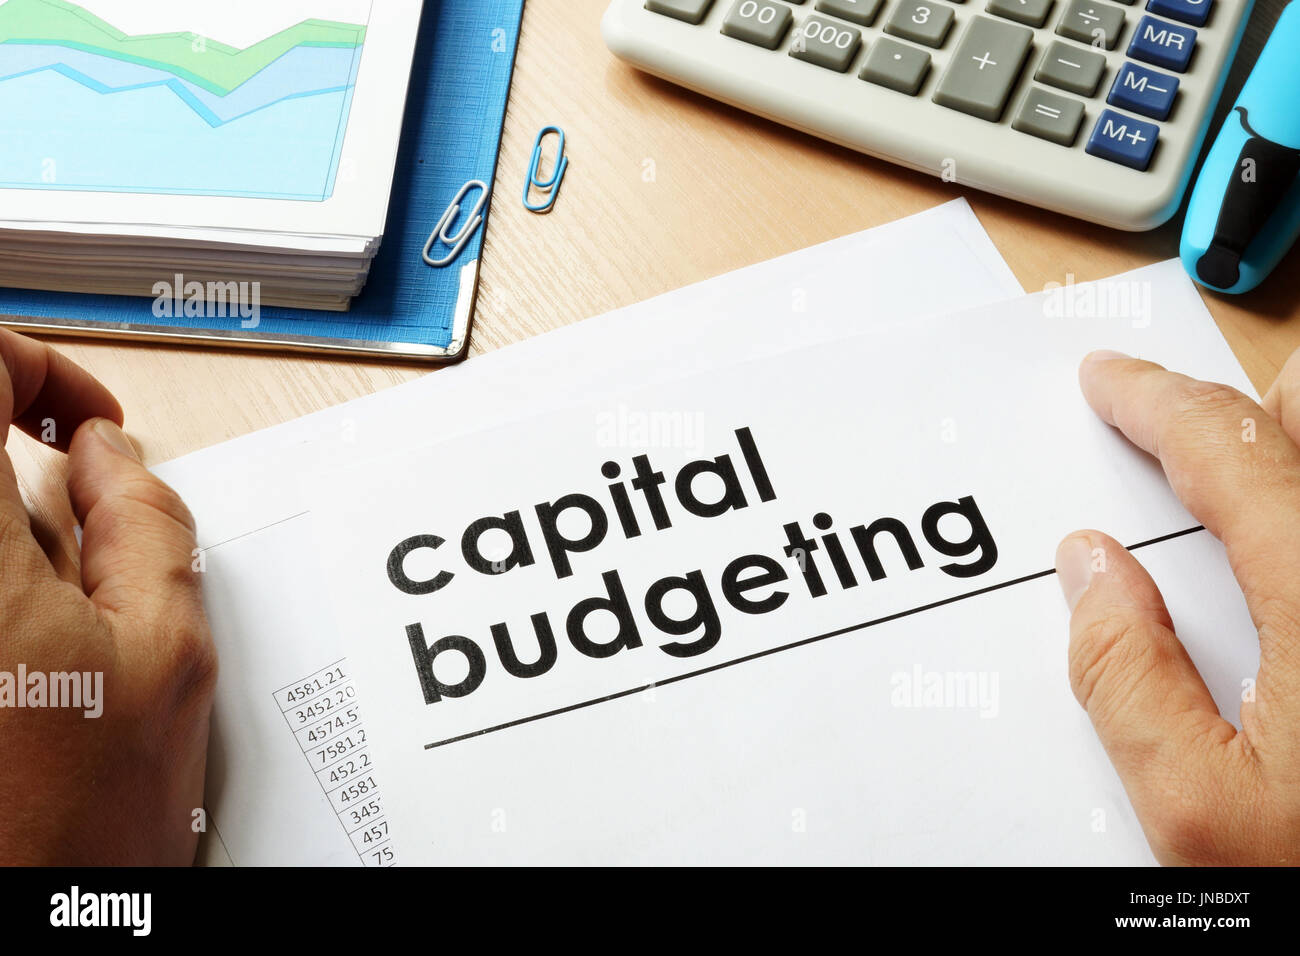 Papers with title capital budgeting. - Stock Image